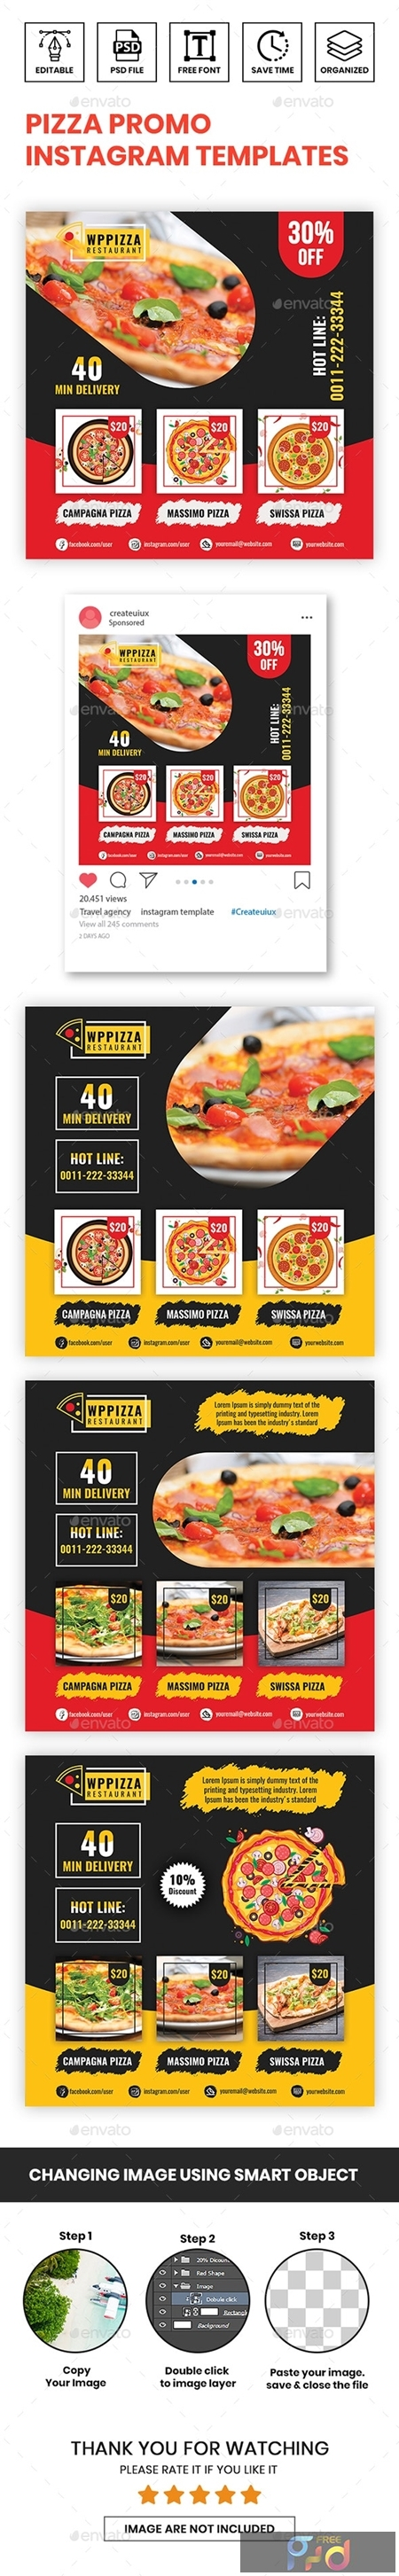 Pizza Promo Instagram Templates 23844901 1